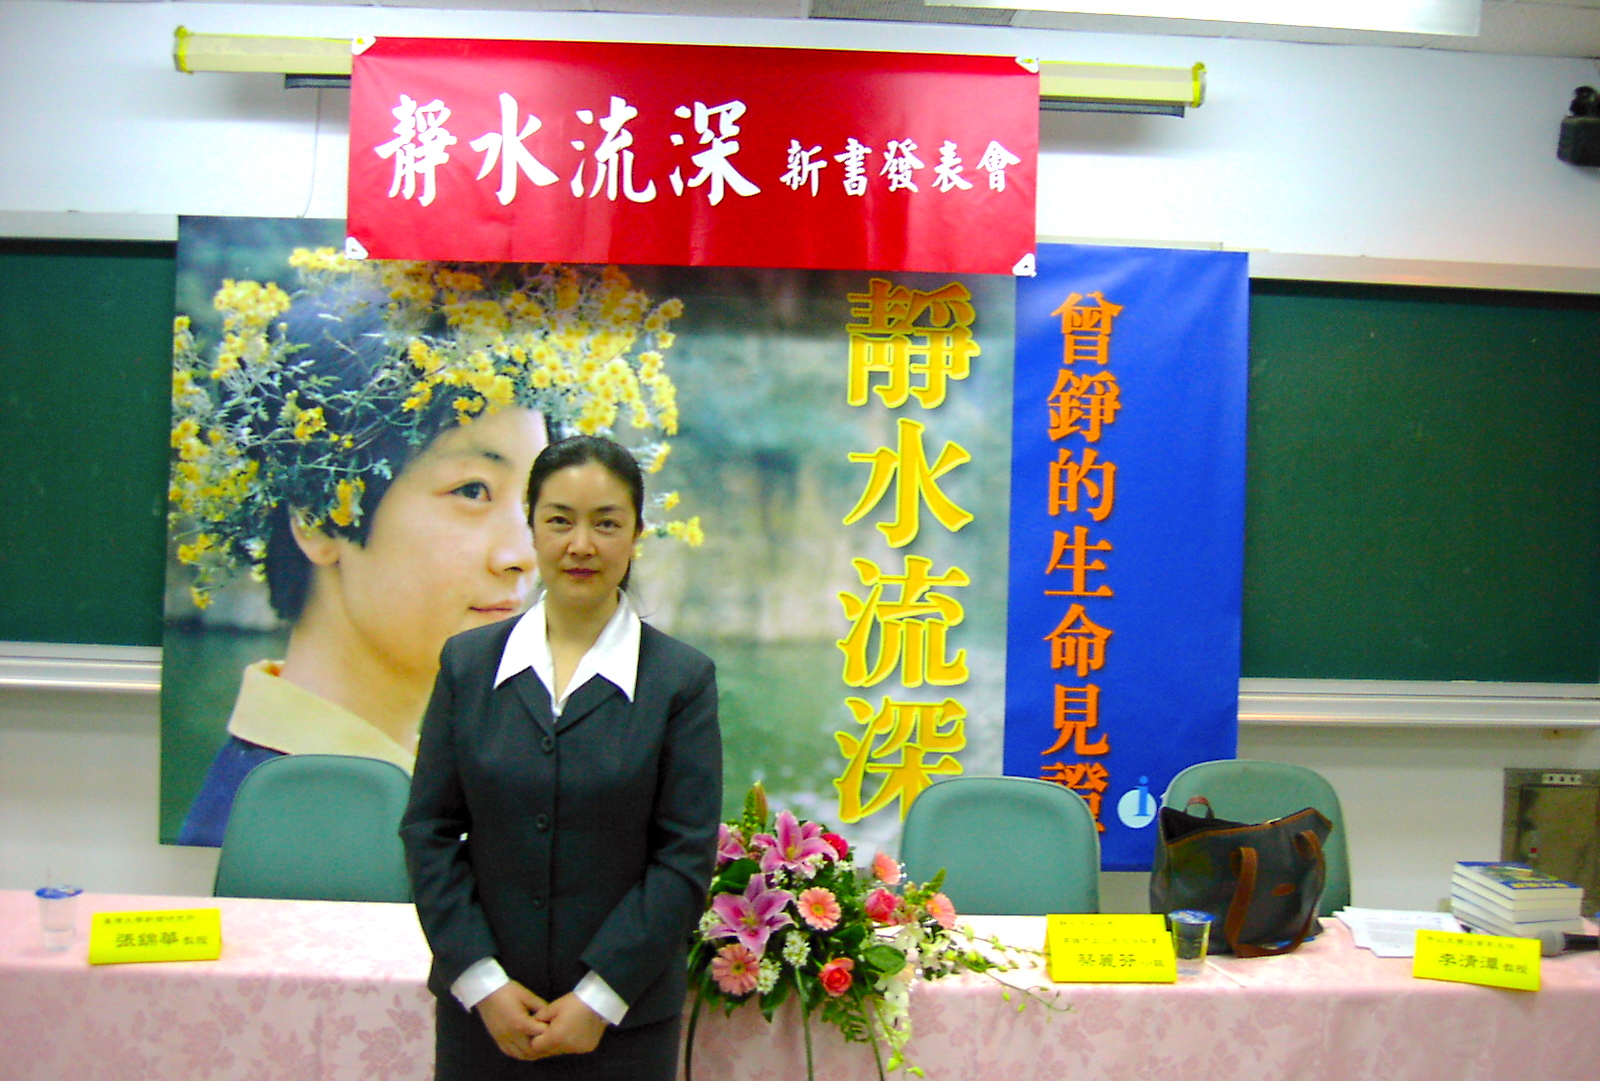 Jennifer at her book launch in Kaohsiung, Taiwan in January 2004.